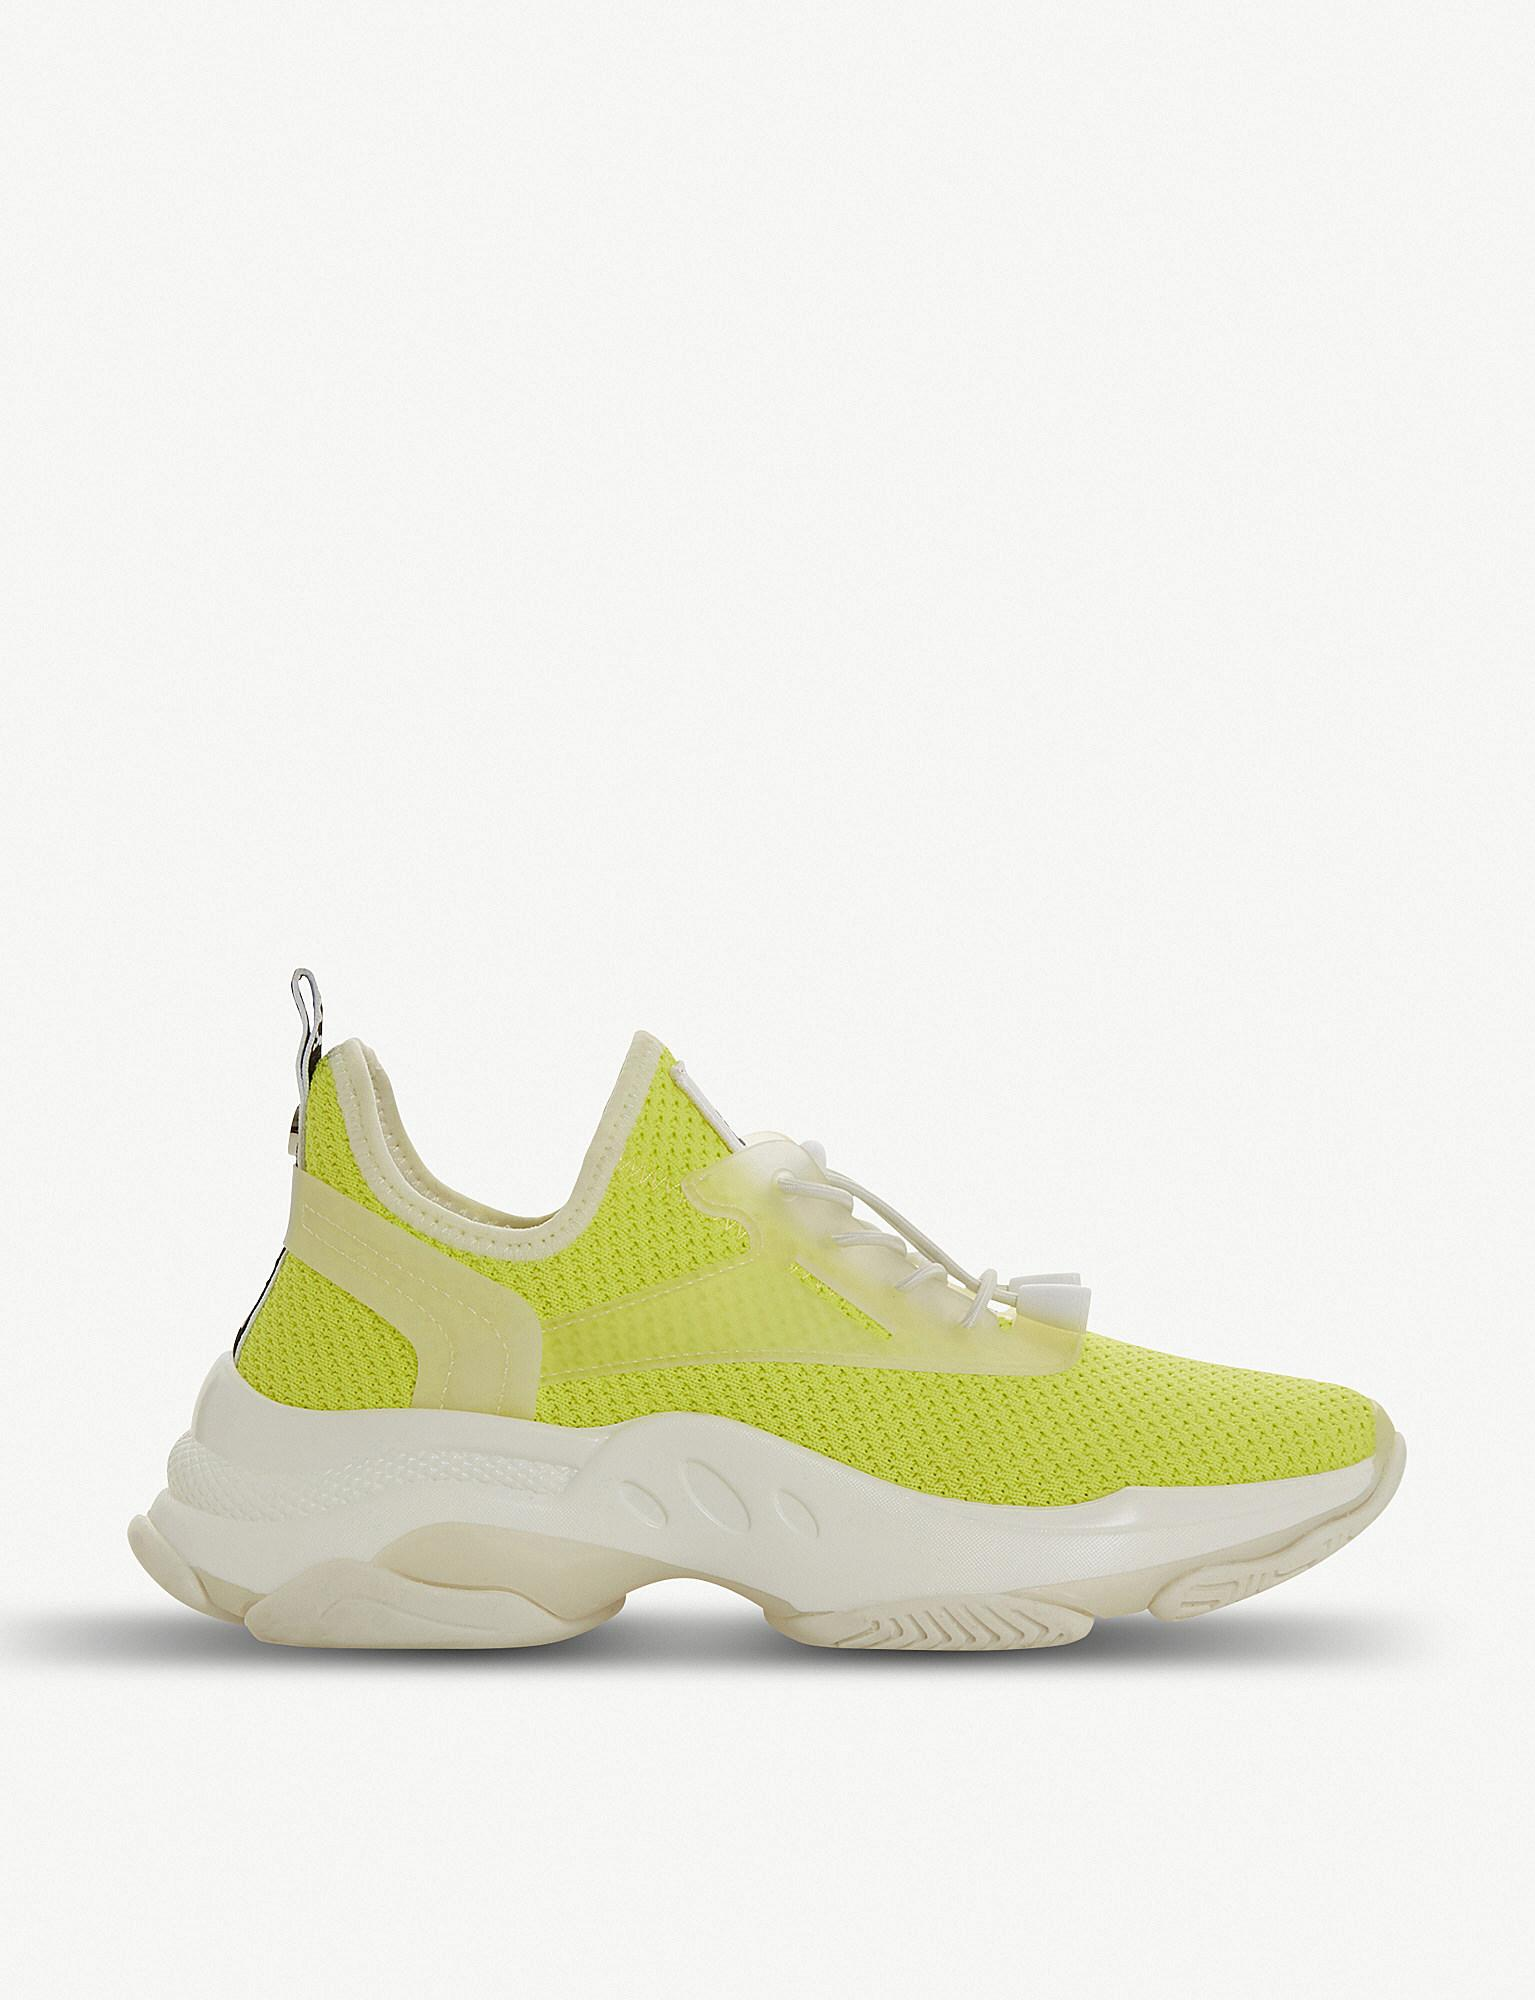 6bbd0e512 Steve Madden Match Stretch-knit Trainers in Yellow - Lyst